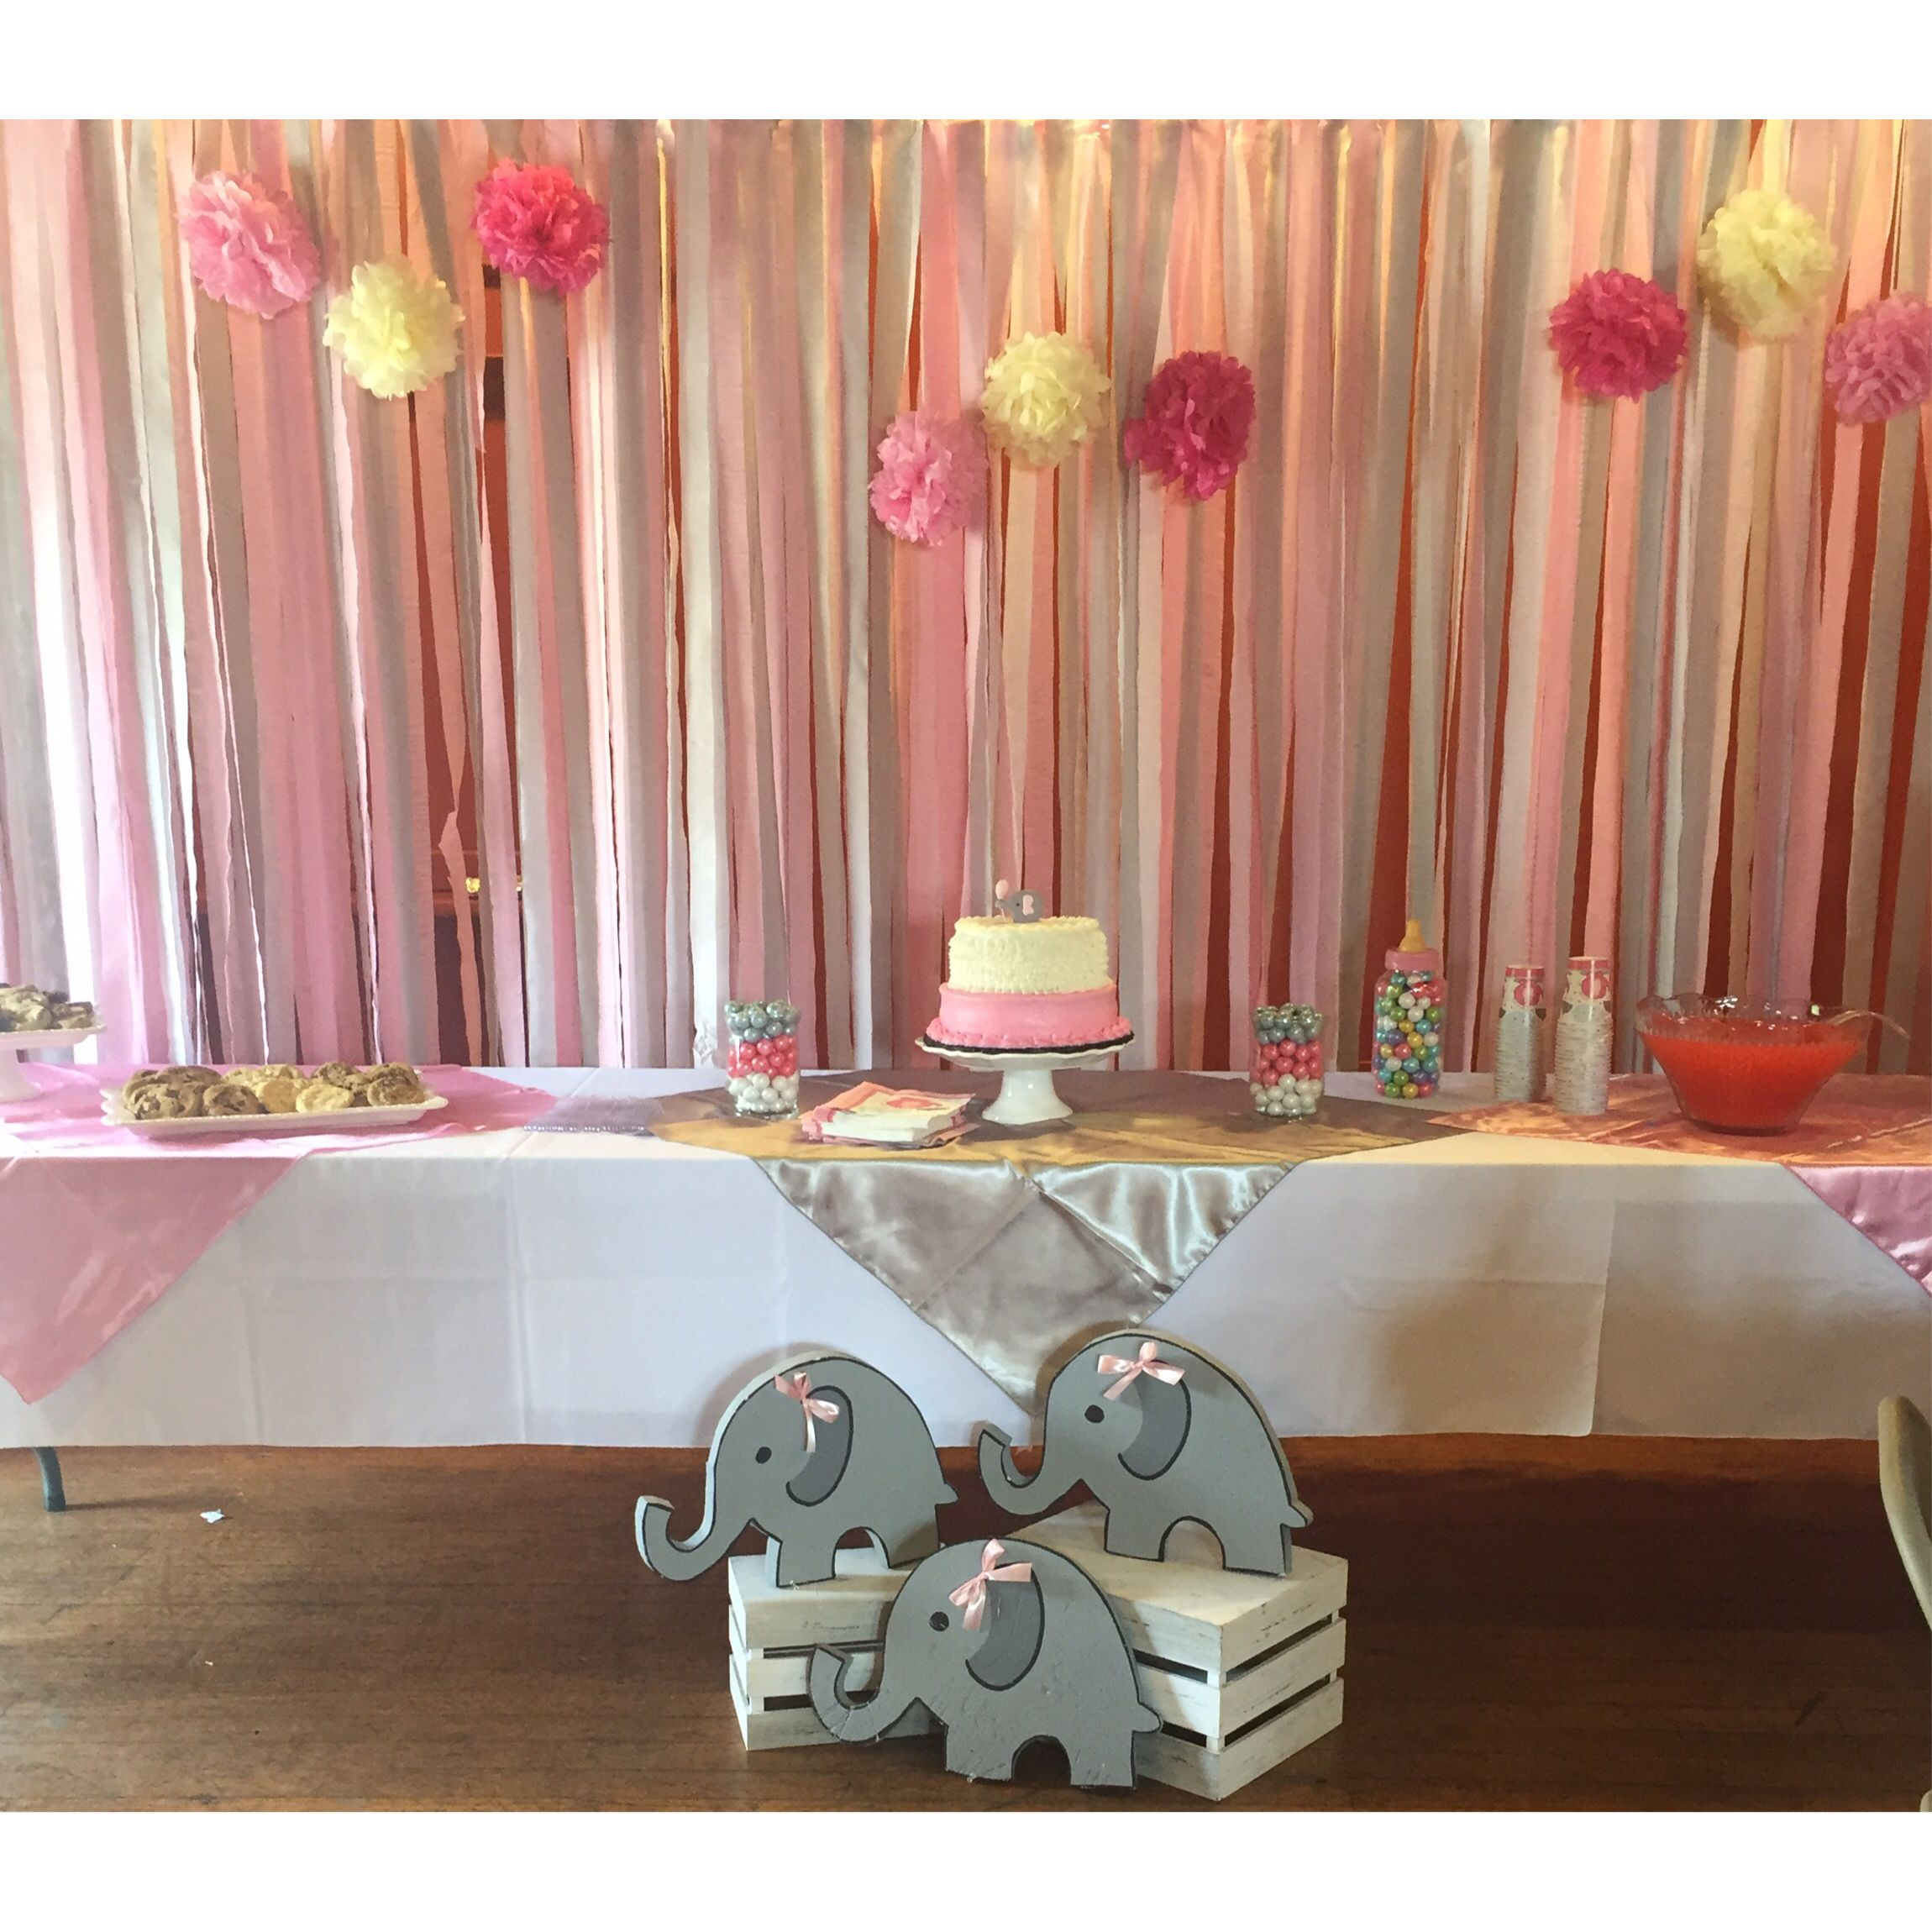 Baby Shower Decor Cake Table Decorations Backdrops Streamers Steamer Backdrop Eleph Baby Shower Party Decorations Baby Shower Cake Table Cake Table Decorations